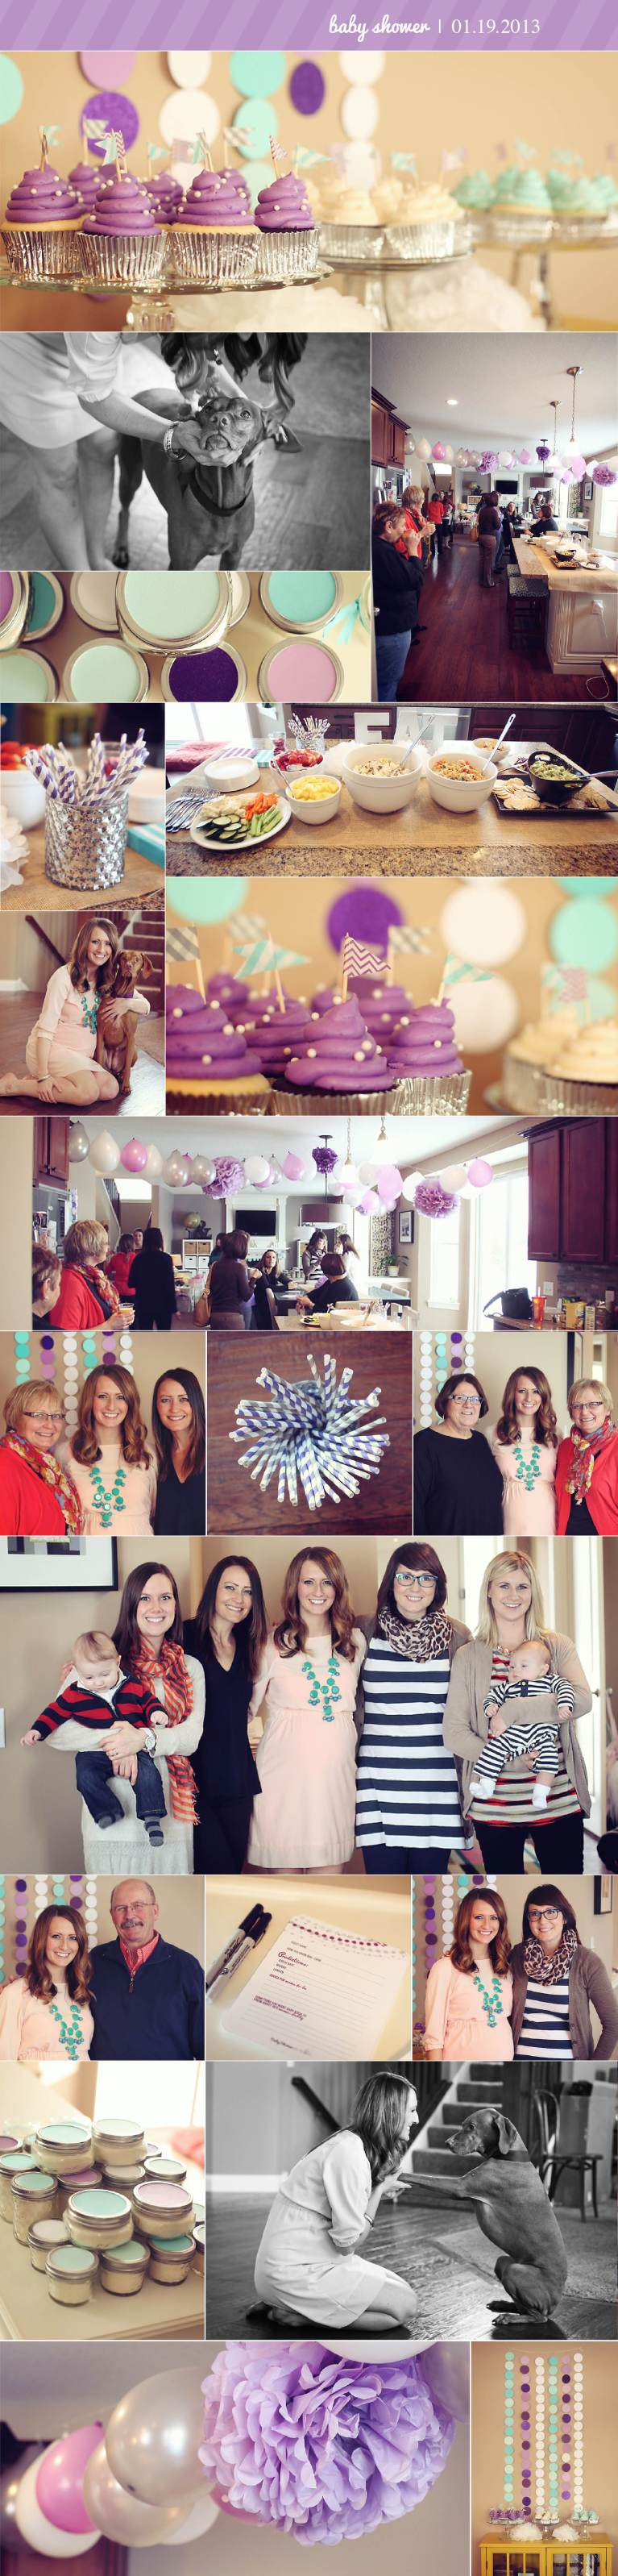 BABY SHOWER PHOTO RECAP